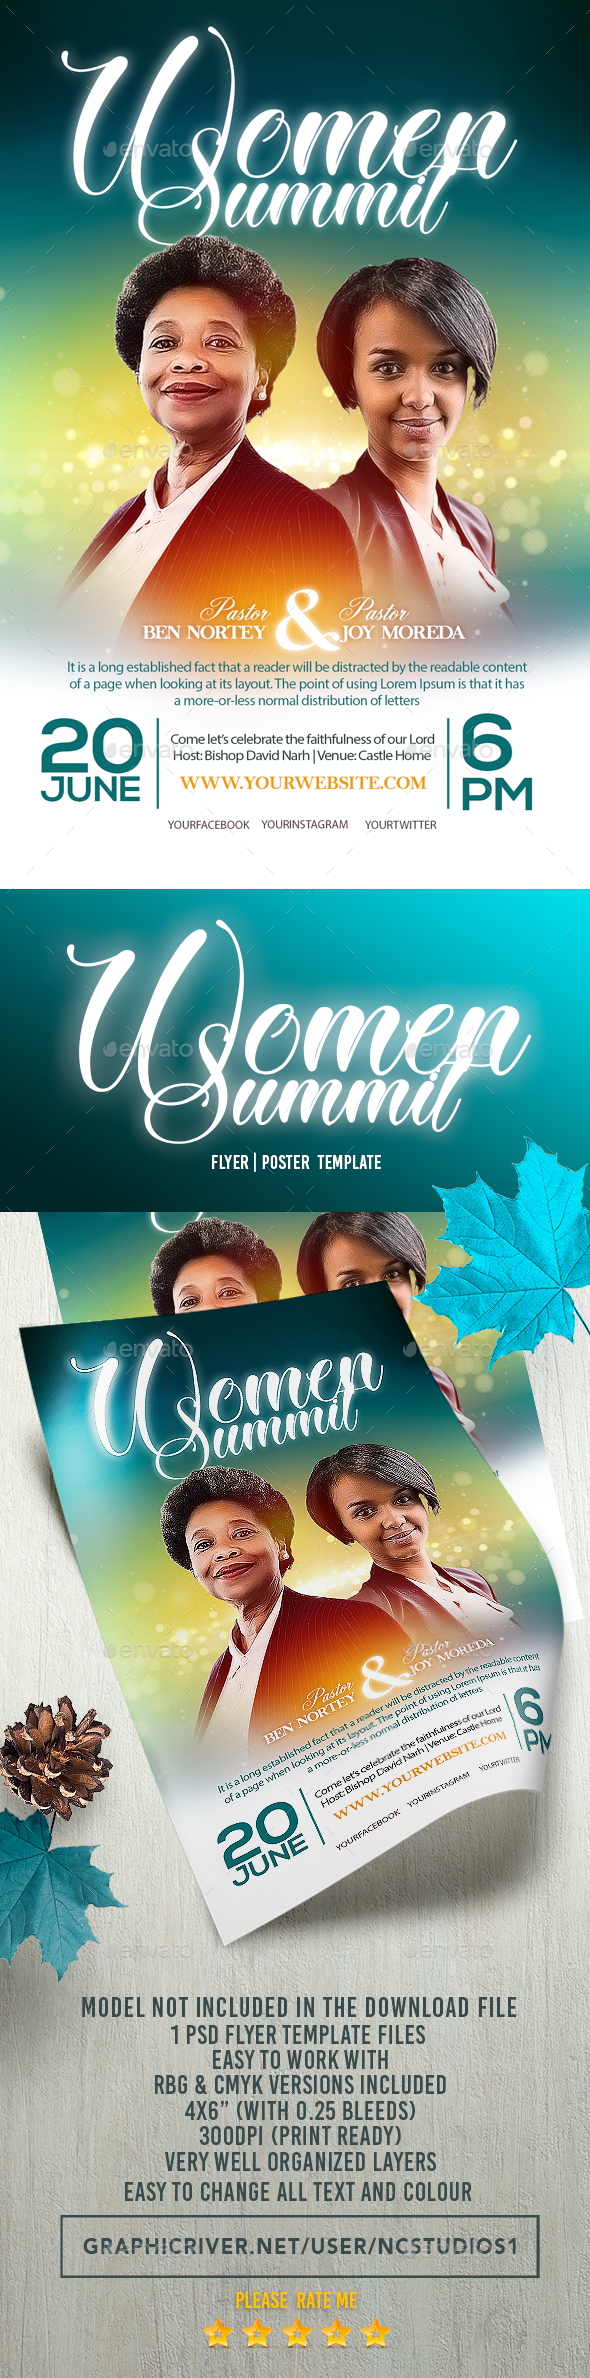 Women Summit Flyer Template